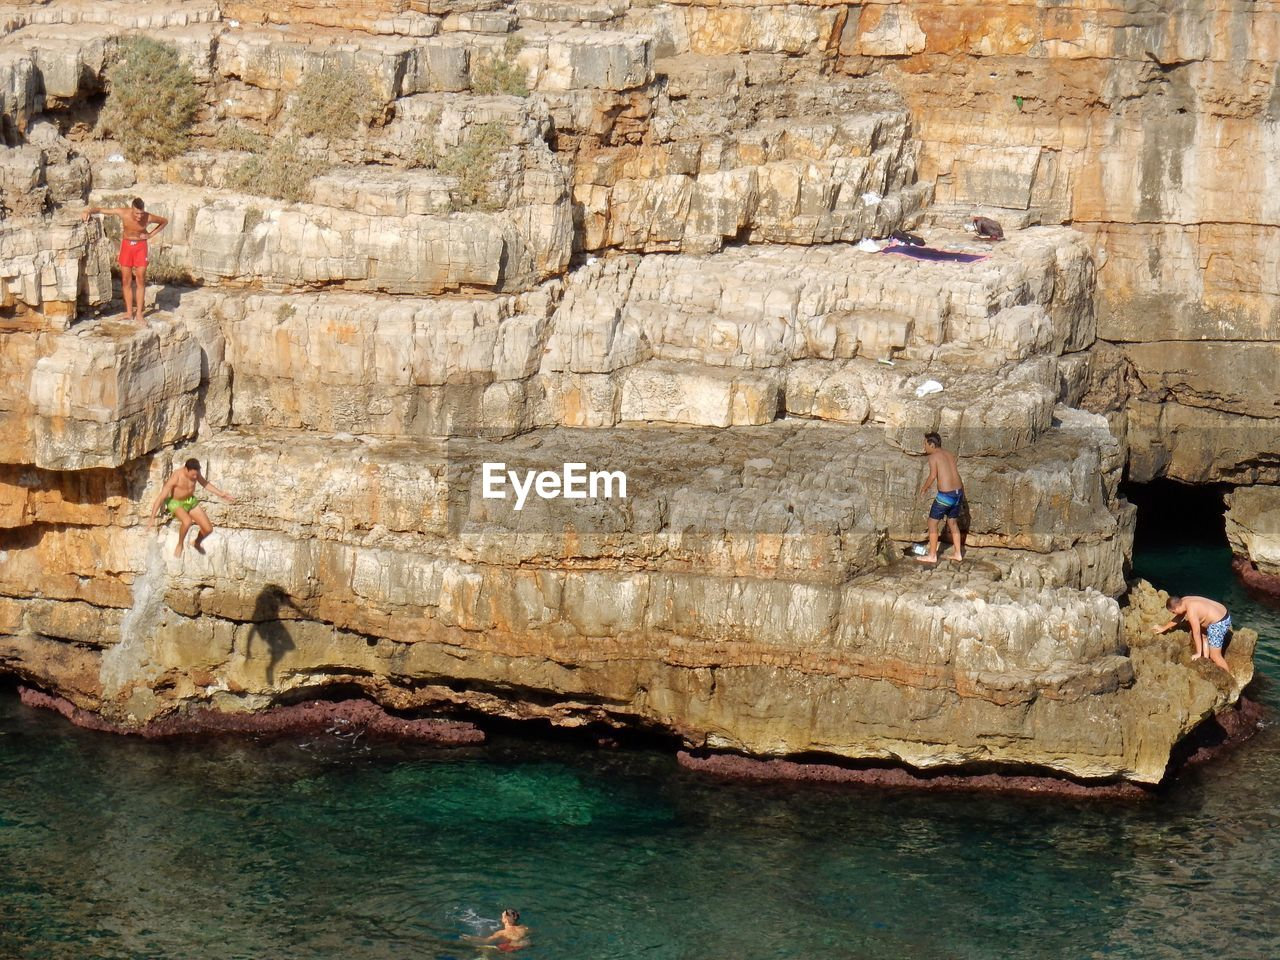 water, solid, sea, rock formation, rock - object, rock, group of people, nature, day, adventure, real people, land, people, outdoors, architecture, leisure activity, men, travel, beach